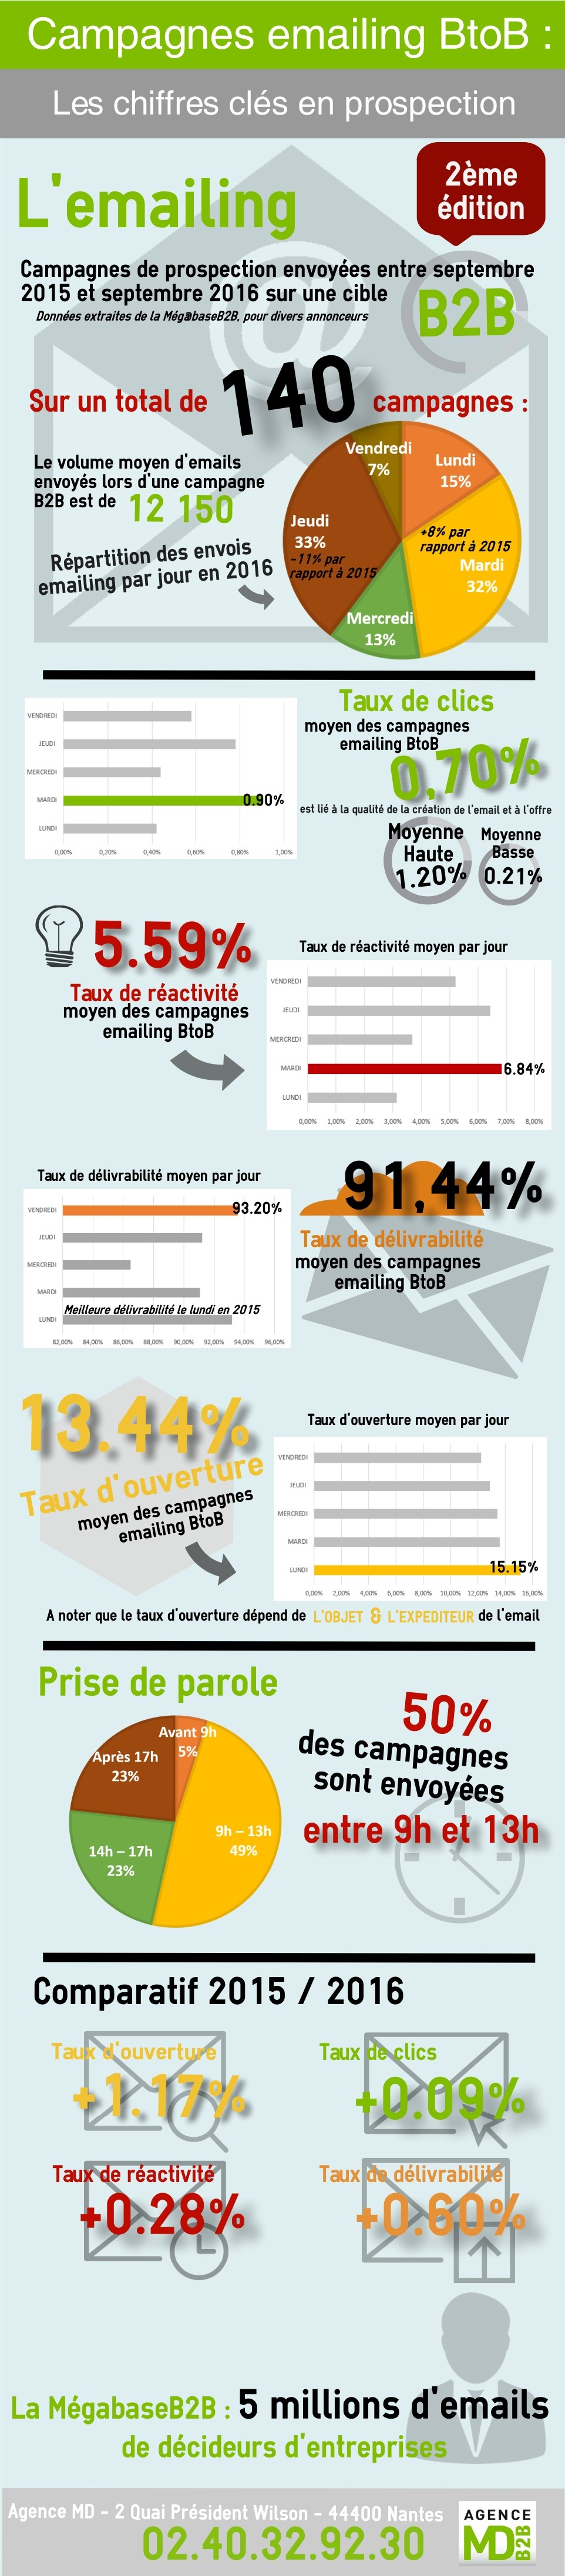 Infographie-Chiffres-cles-emailing-B2B-2016